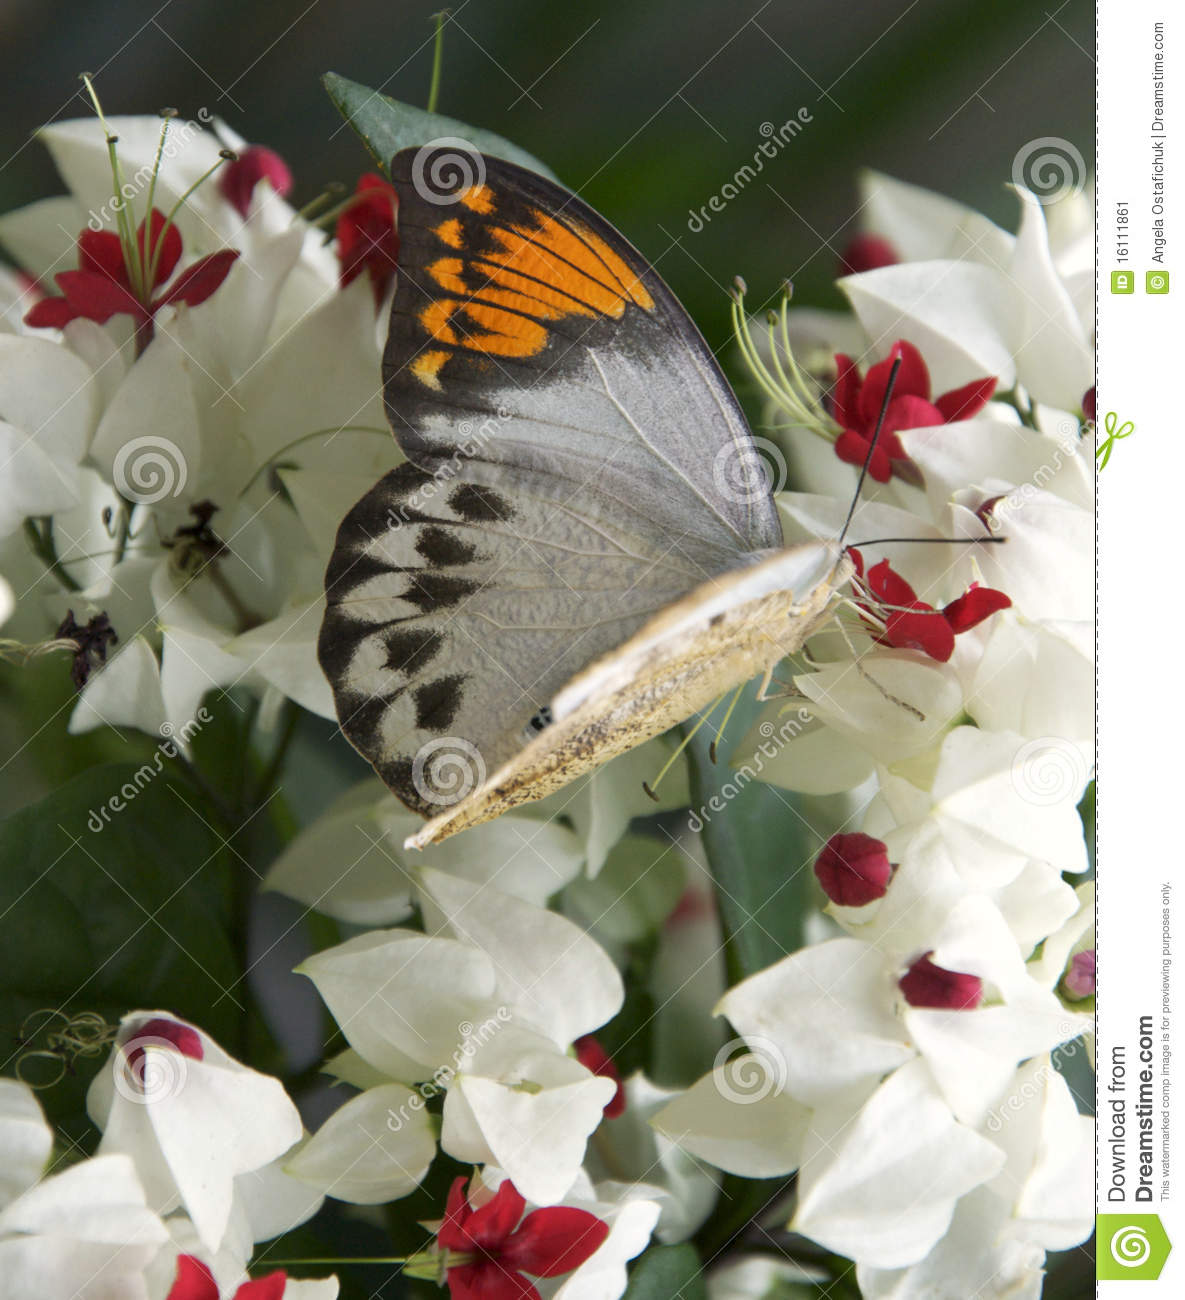 Great Orange Tip Butterfly and flowers